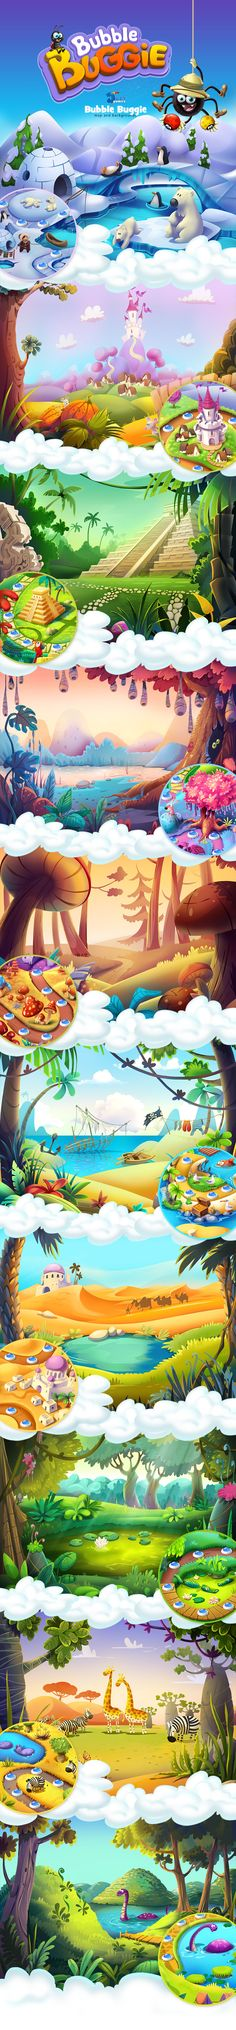 Bubble Buggie: map and backgrounds on Behance